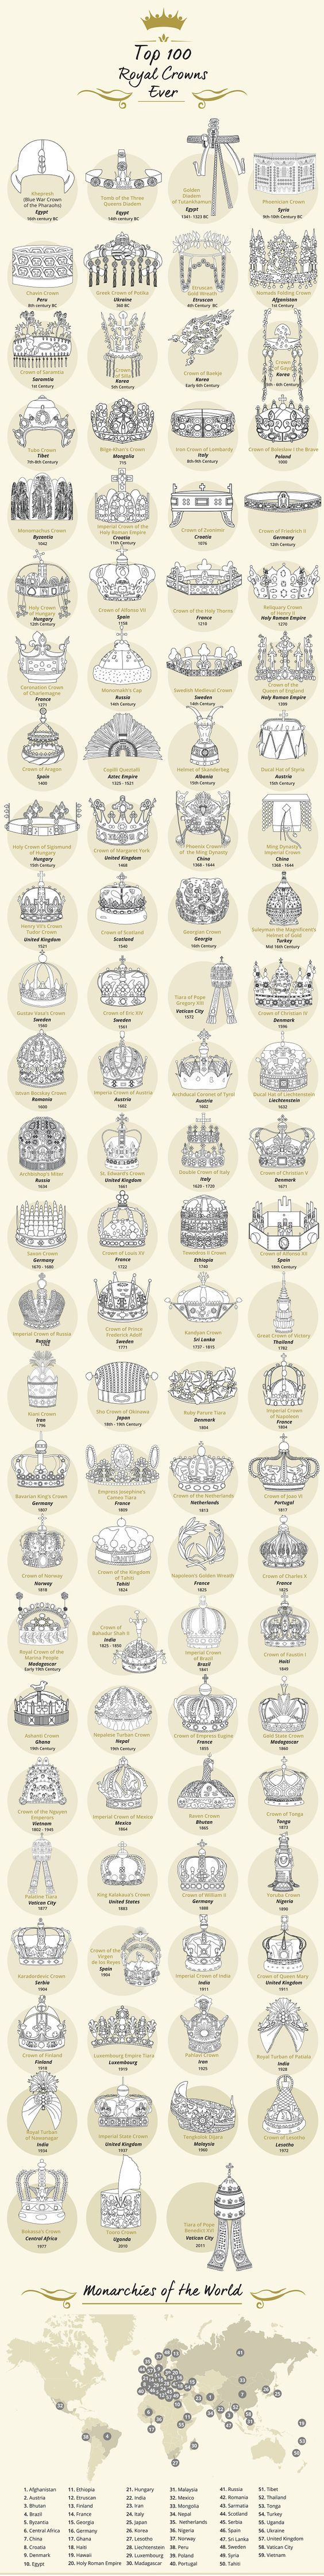 When you think of medieval history or high fantasy, the picture just isn't complete without a crown-wearing King or Queen.It's very telling of our human nature